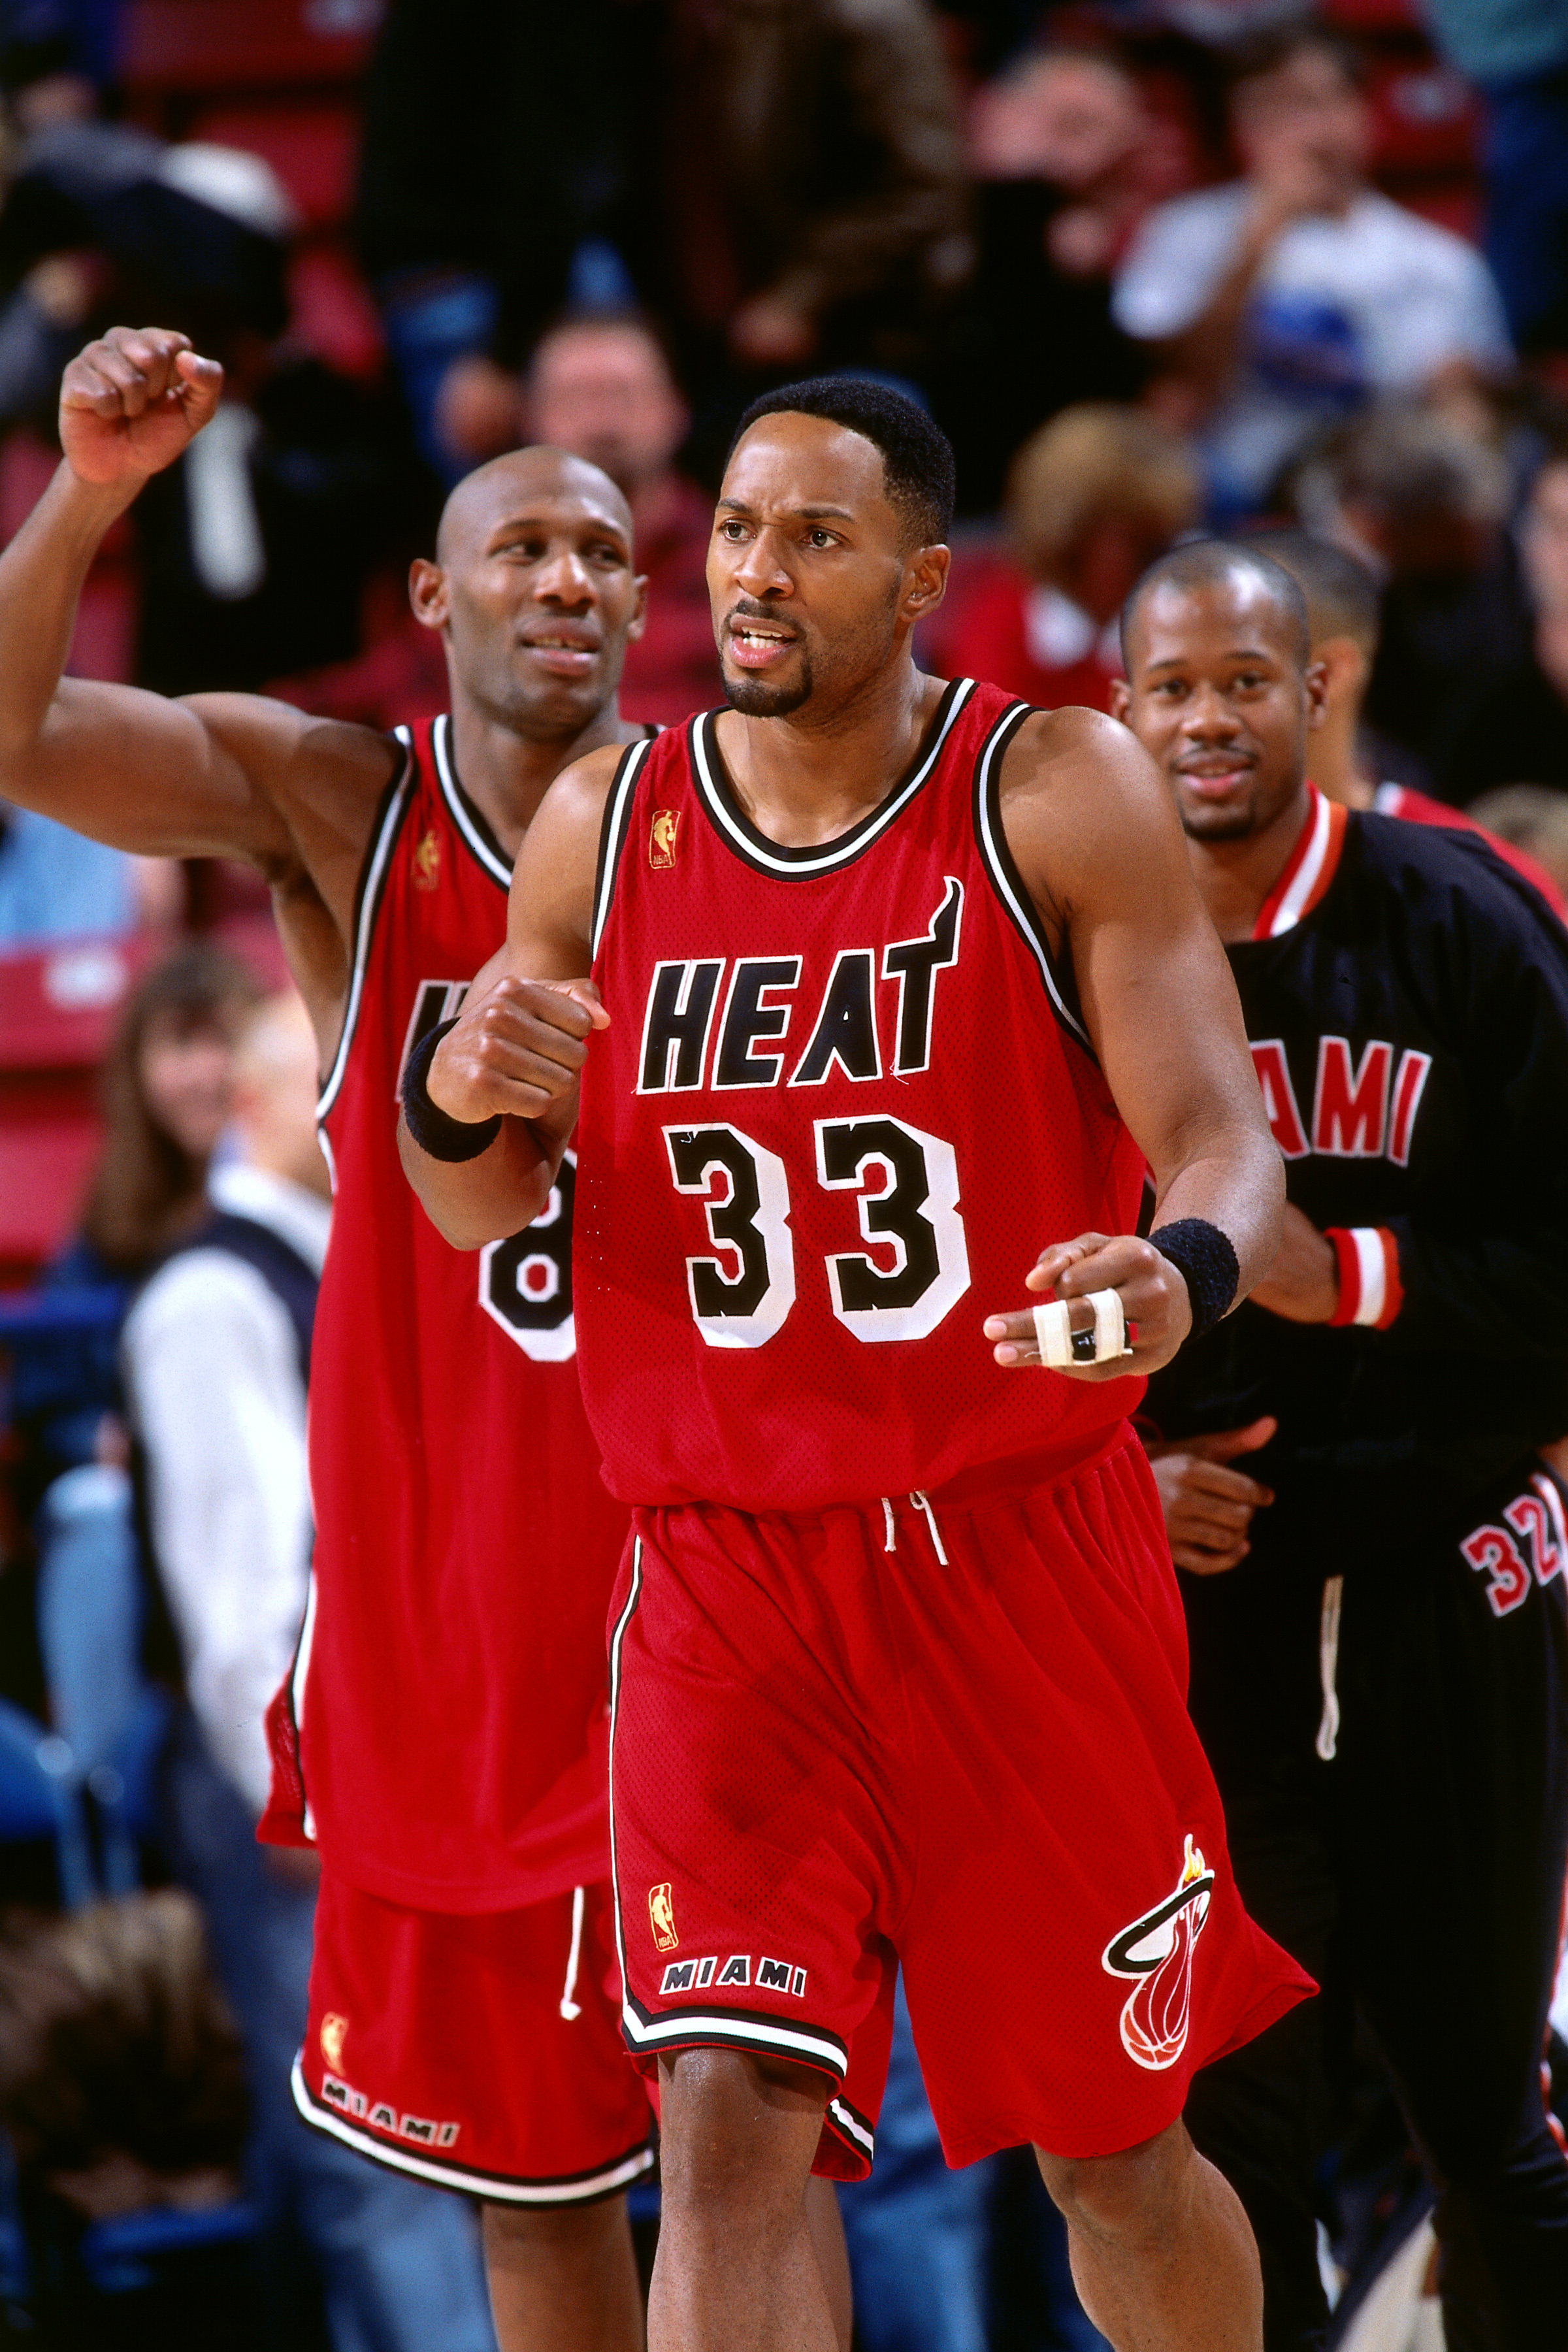 851ebbda0c7 Alonzo Mourning (No. 33) of the Miami Heat celebrates against the  Sacramento Kings on Nov. 22